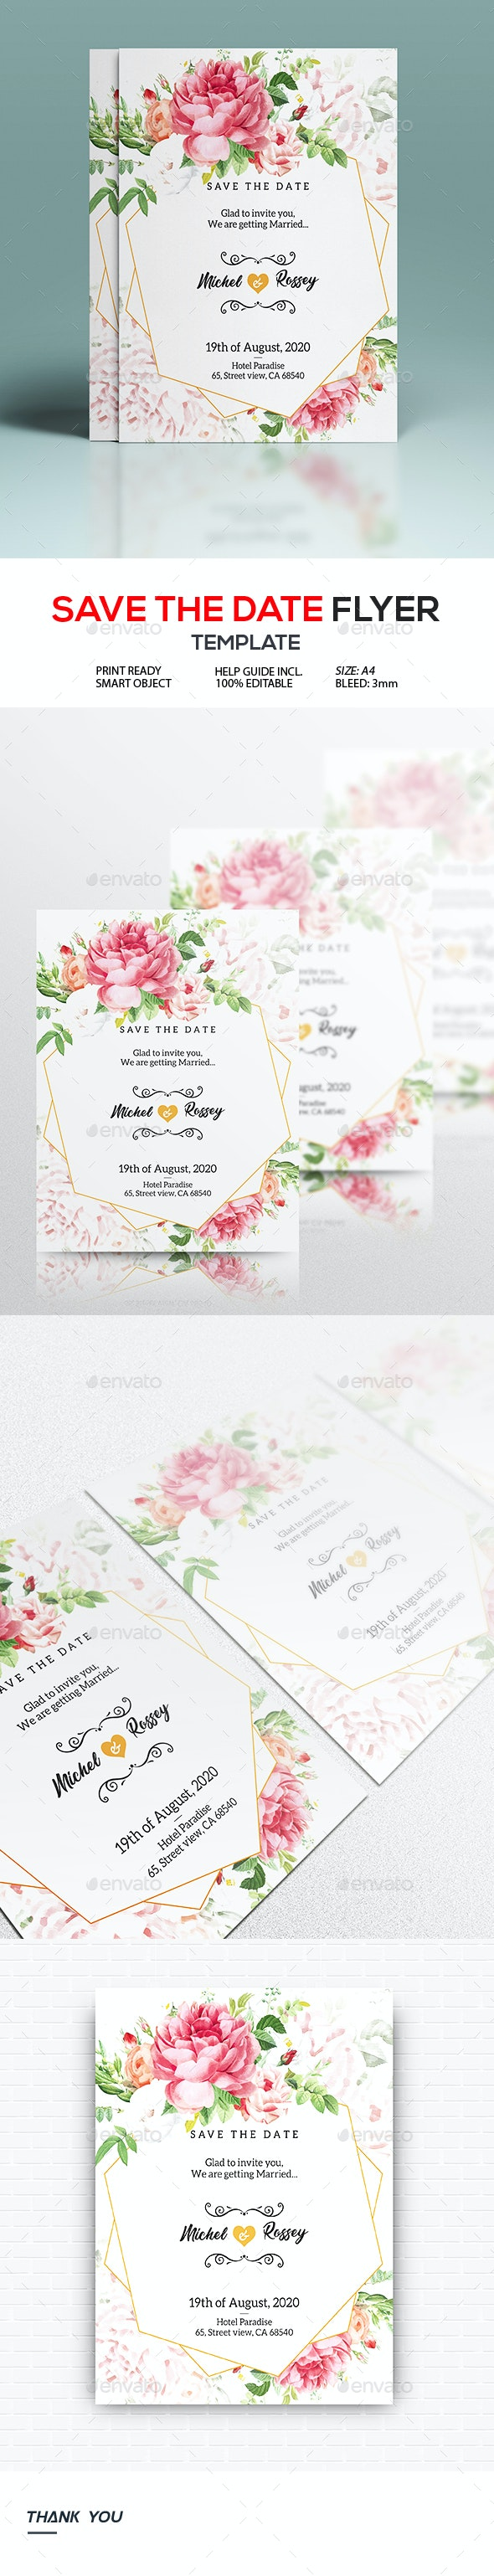 Wedding Invitation and Save The Date Flyer - Wedding Greeting Cards